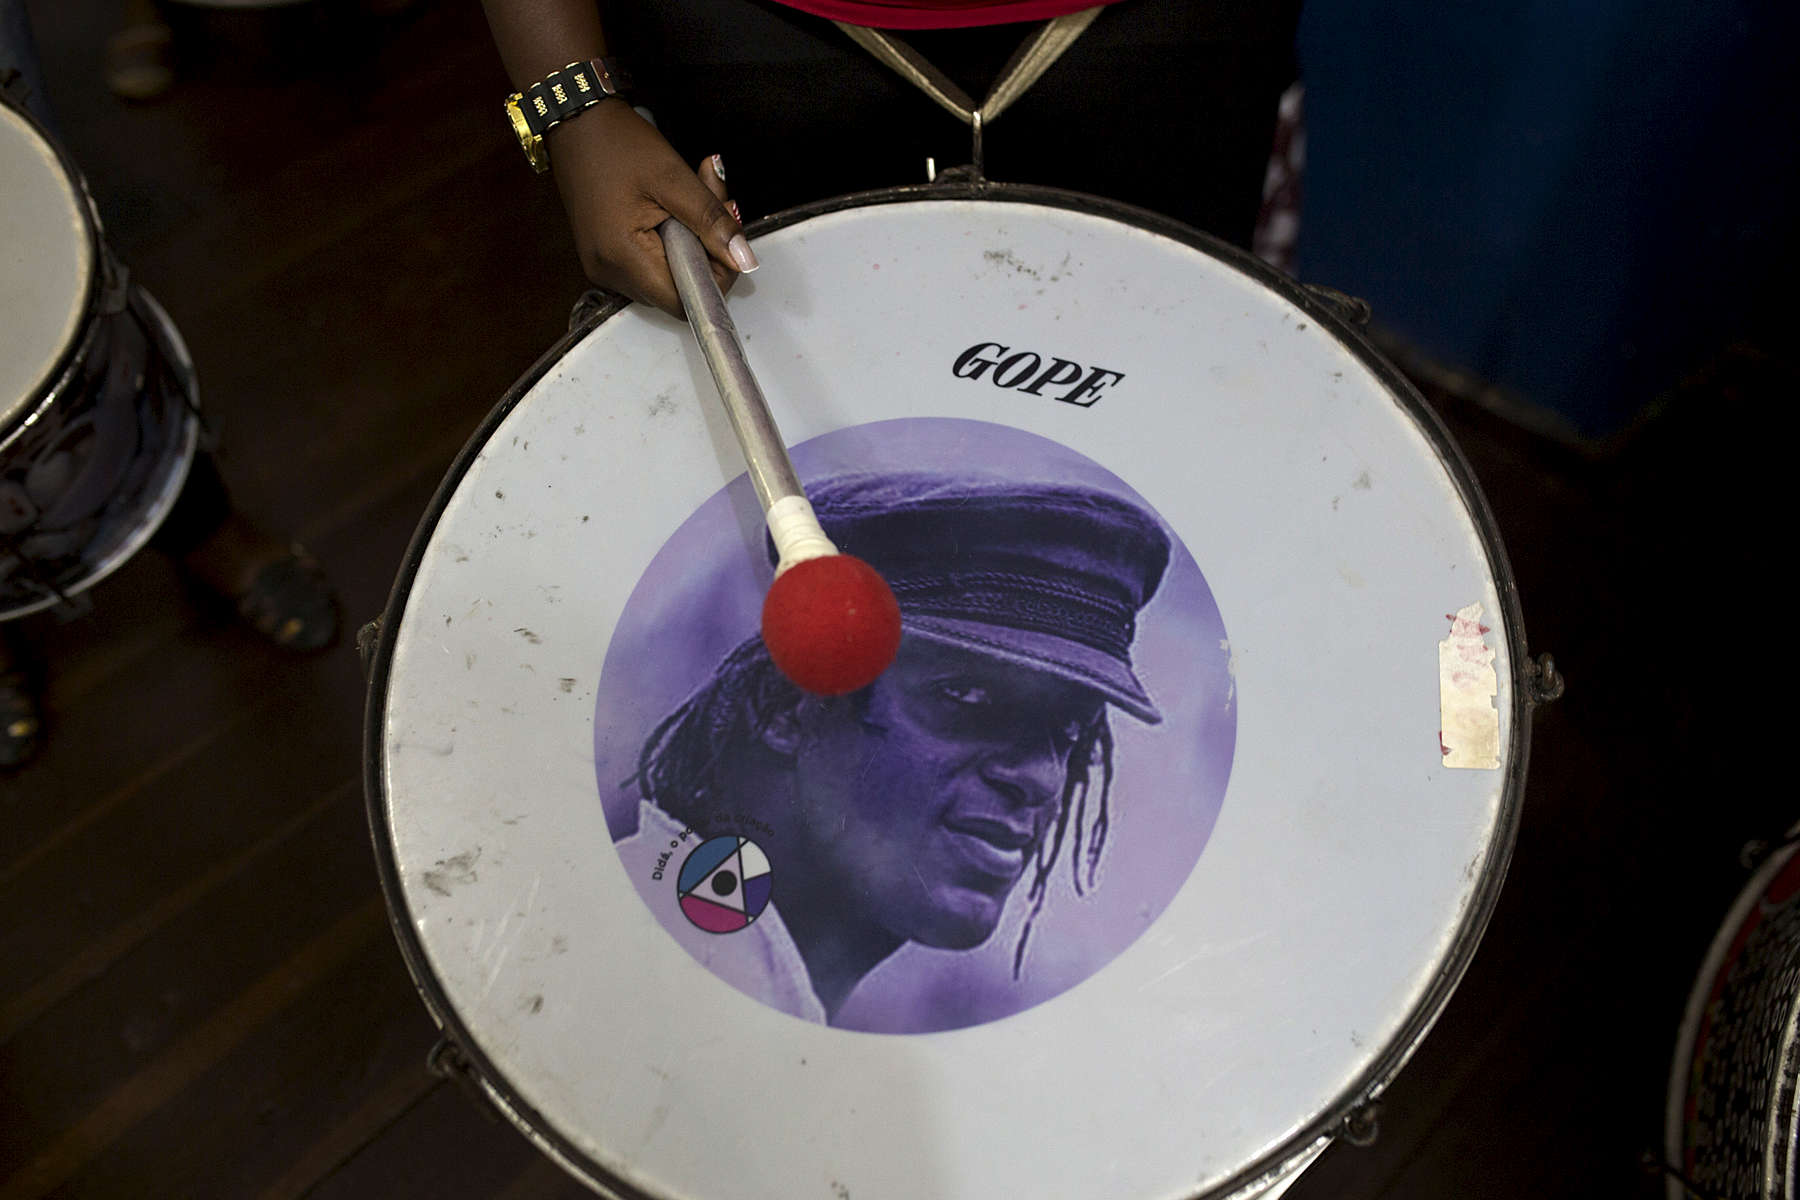 A Didá band member with a surdo drum, with the face of Didá founder Neguinho do Samba, at Project Didá in Salvador's historic neighborhood, Pelourinho.